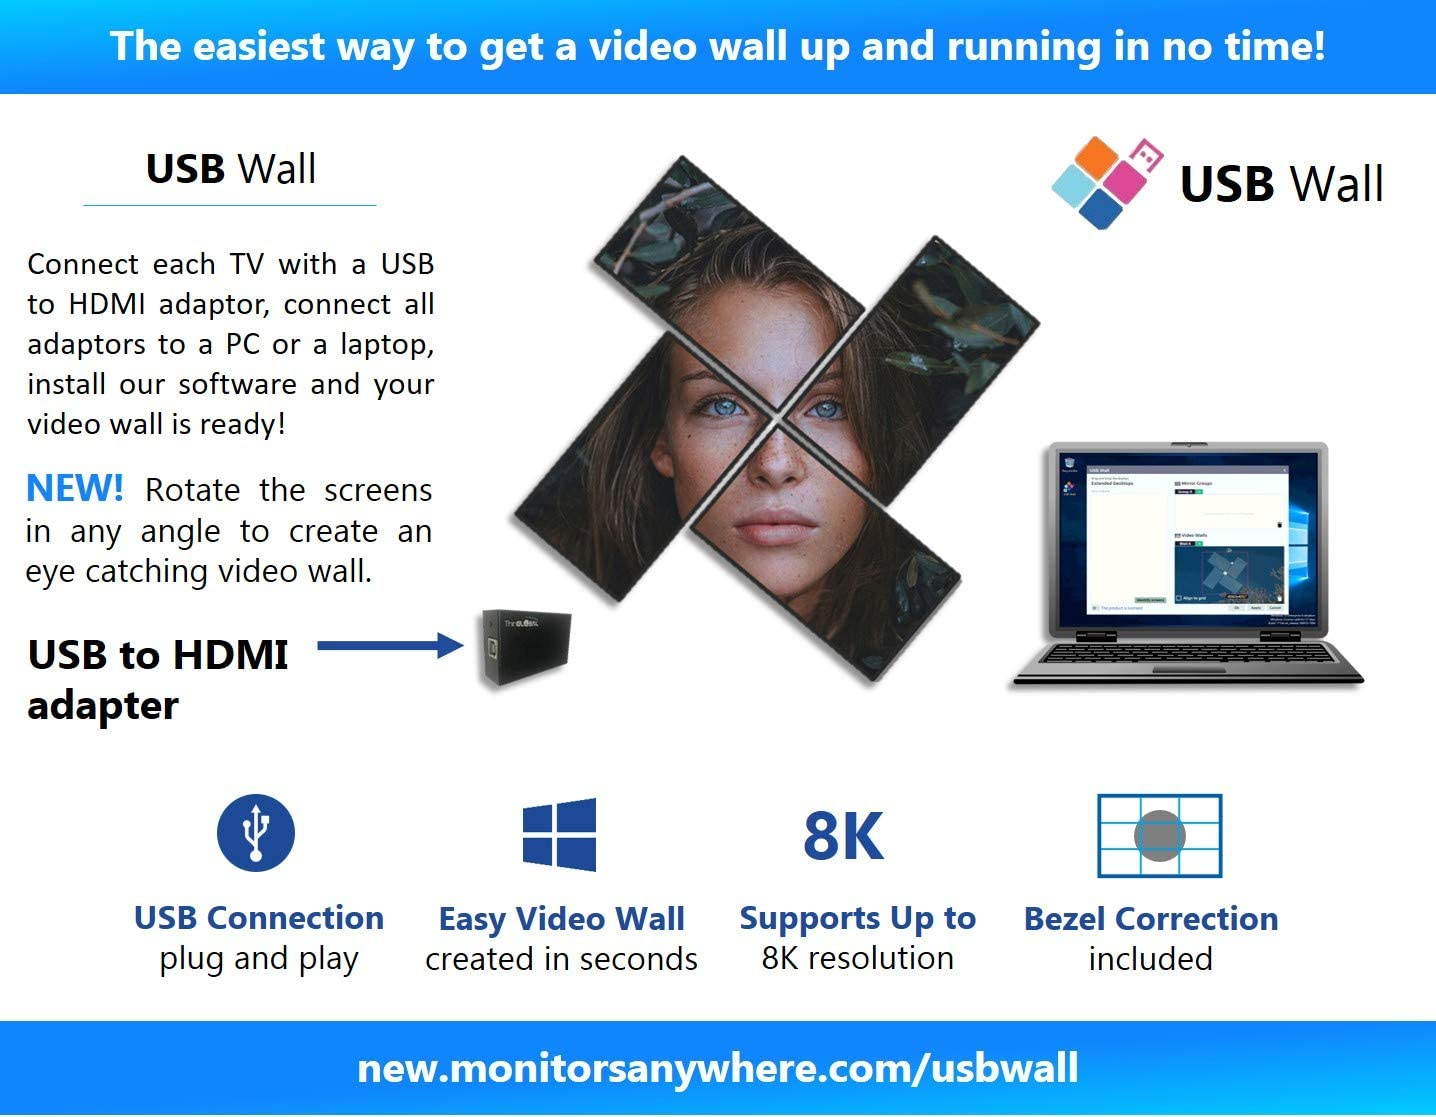 HDMI over USB Create a video wall using a standard PC or laptop align your screens in any angle and any layout USB to HDMI ThinGlobal MiniPoint USB adaptor USB Wall